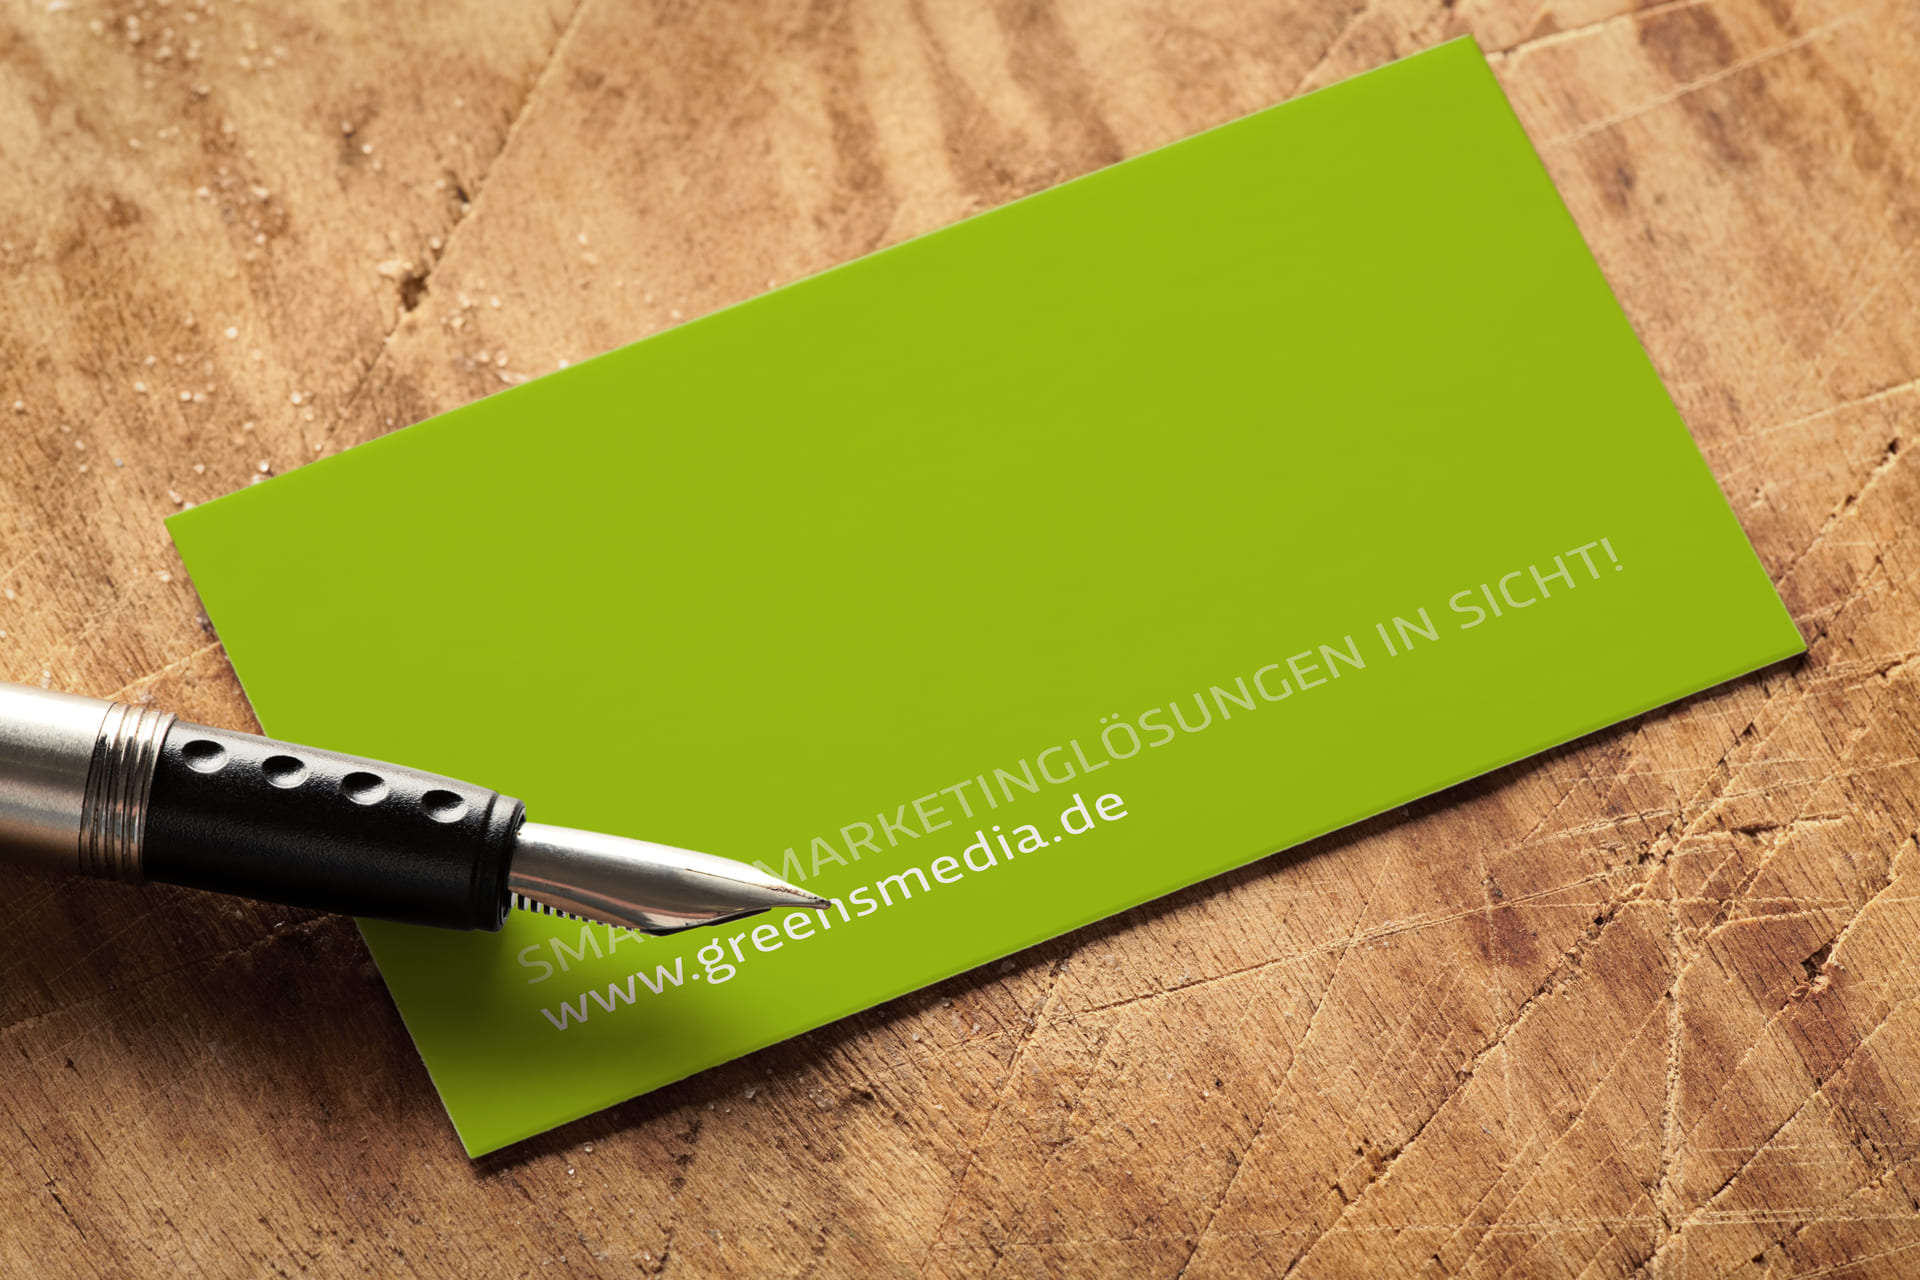 Smarte Marketinglösungen in Sicht mit Greensmedia